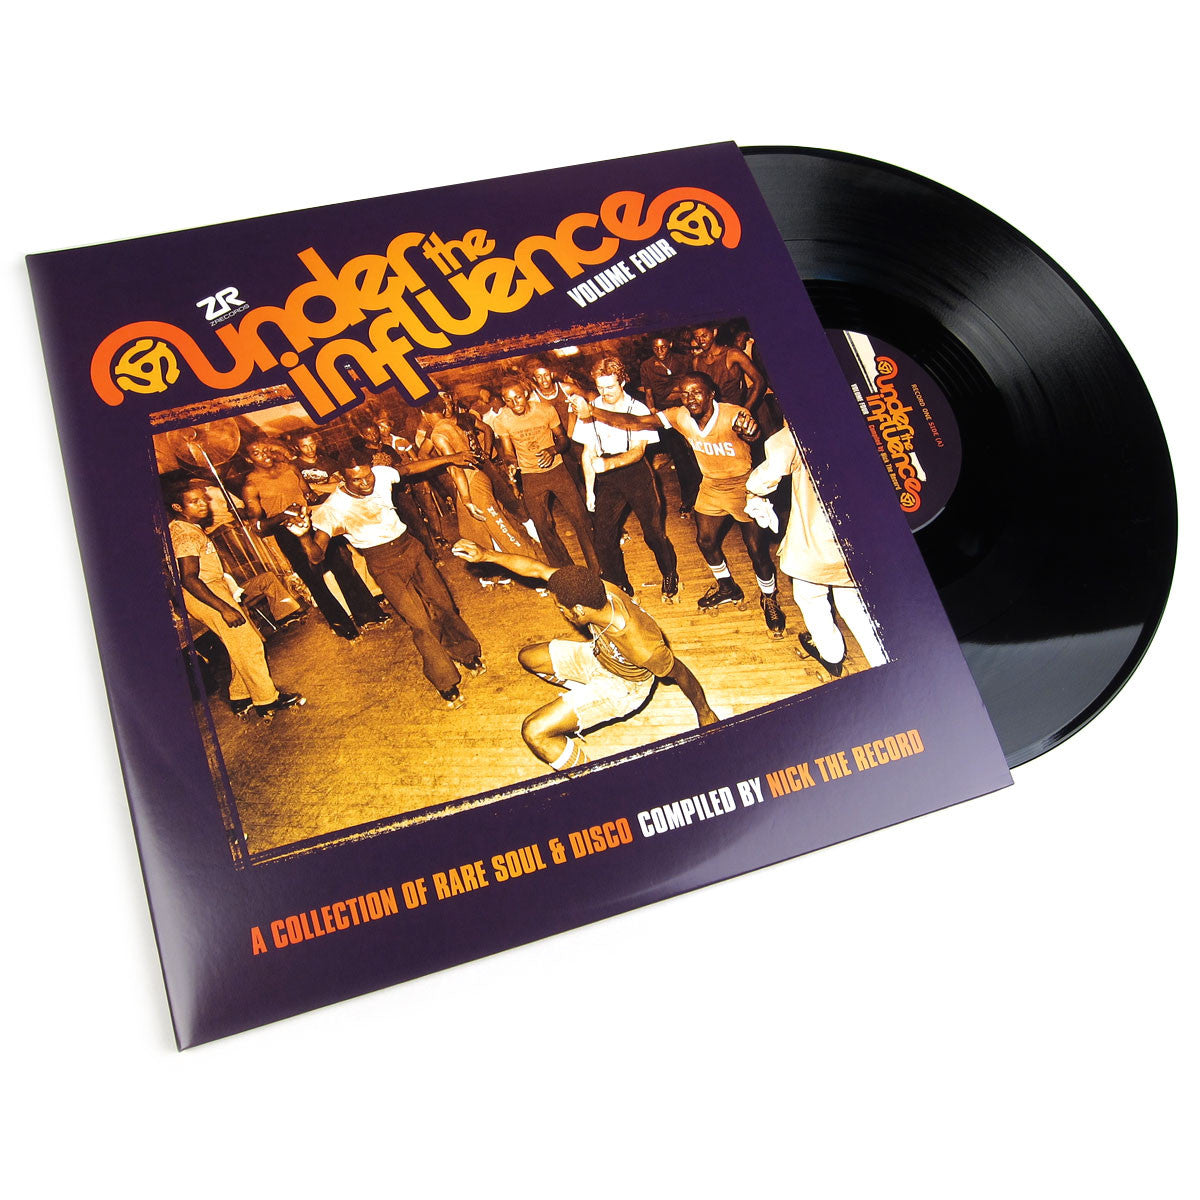 Nick The Record: Under the Influence Volume Four - A Collection of Rare Soul & Disco Vinyl 2LP